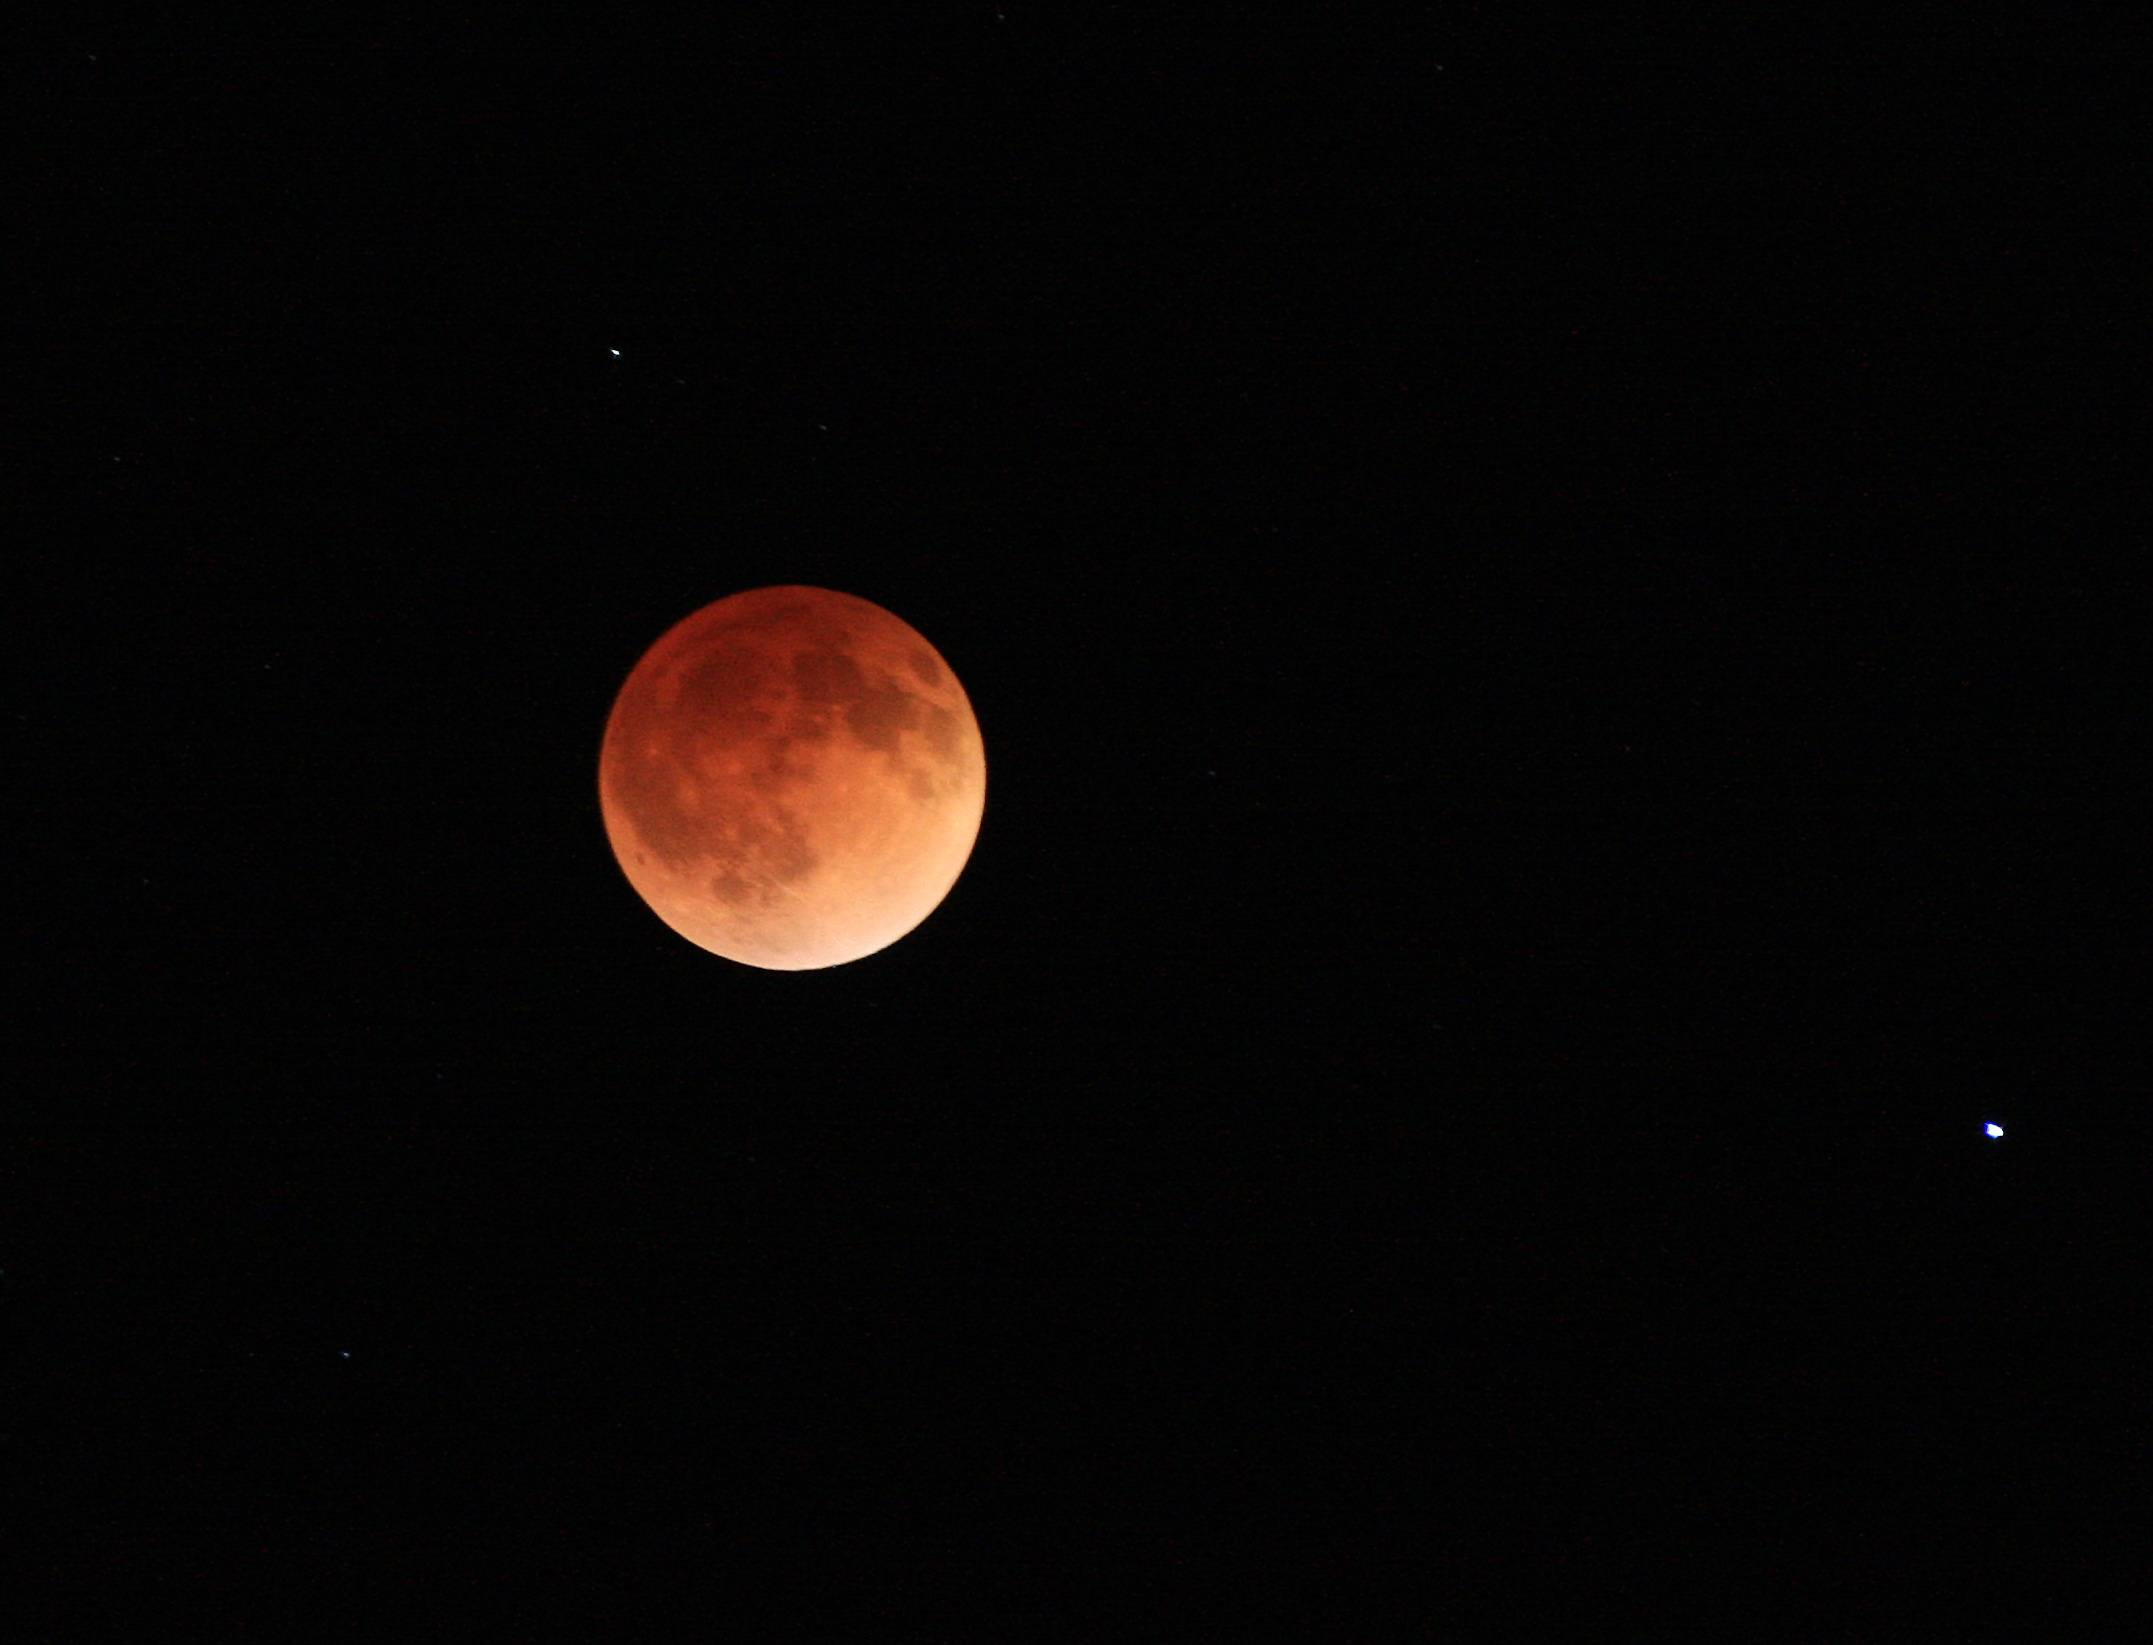 The moon glows a red hue during a total lunar eclipse Tuesday, April 15, 2014, as seen from the Billings, Mont., area. Tuesday's eclipse is the first of four total lunar eclipses that will take place between 2014 to 2015.